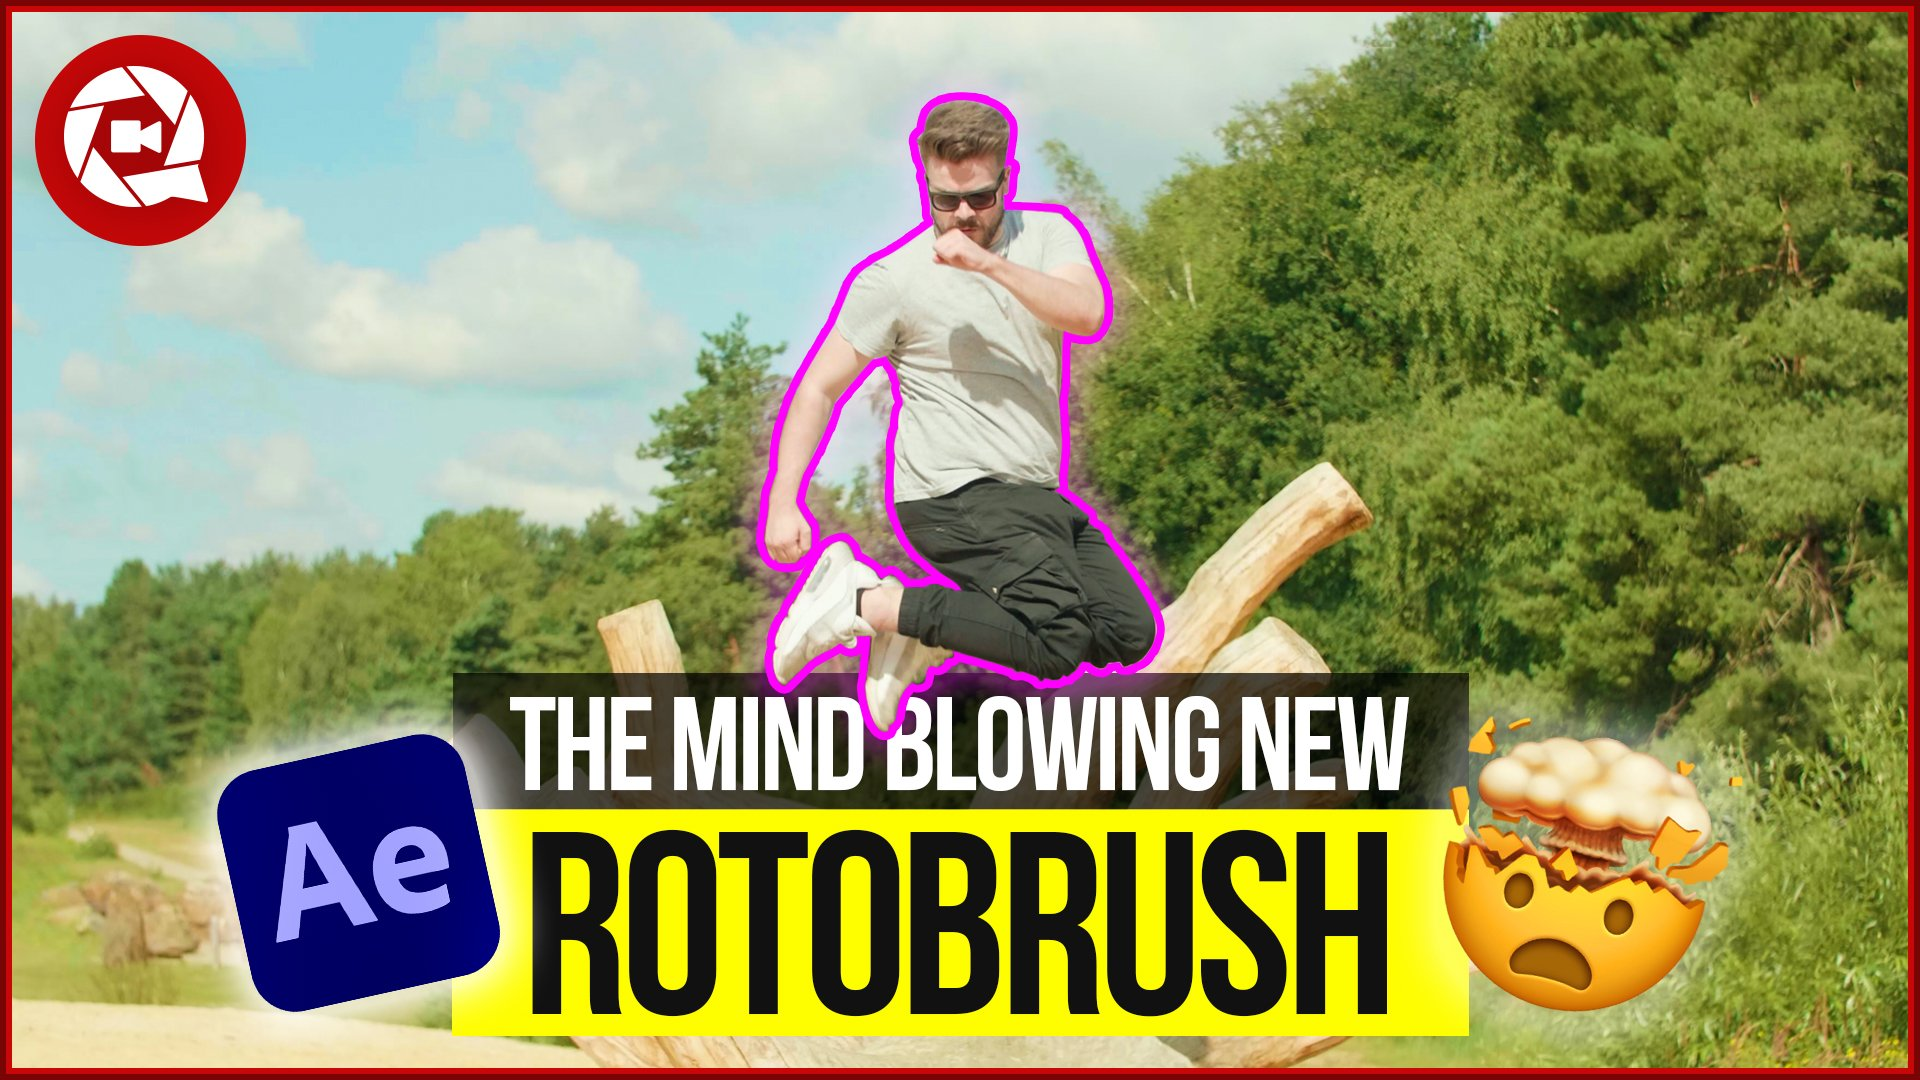 New Rotobrush After Effects